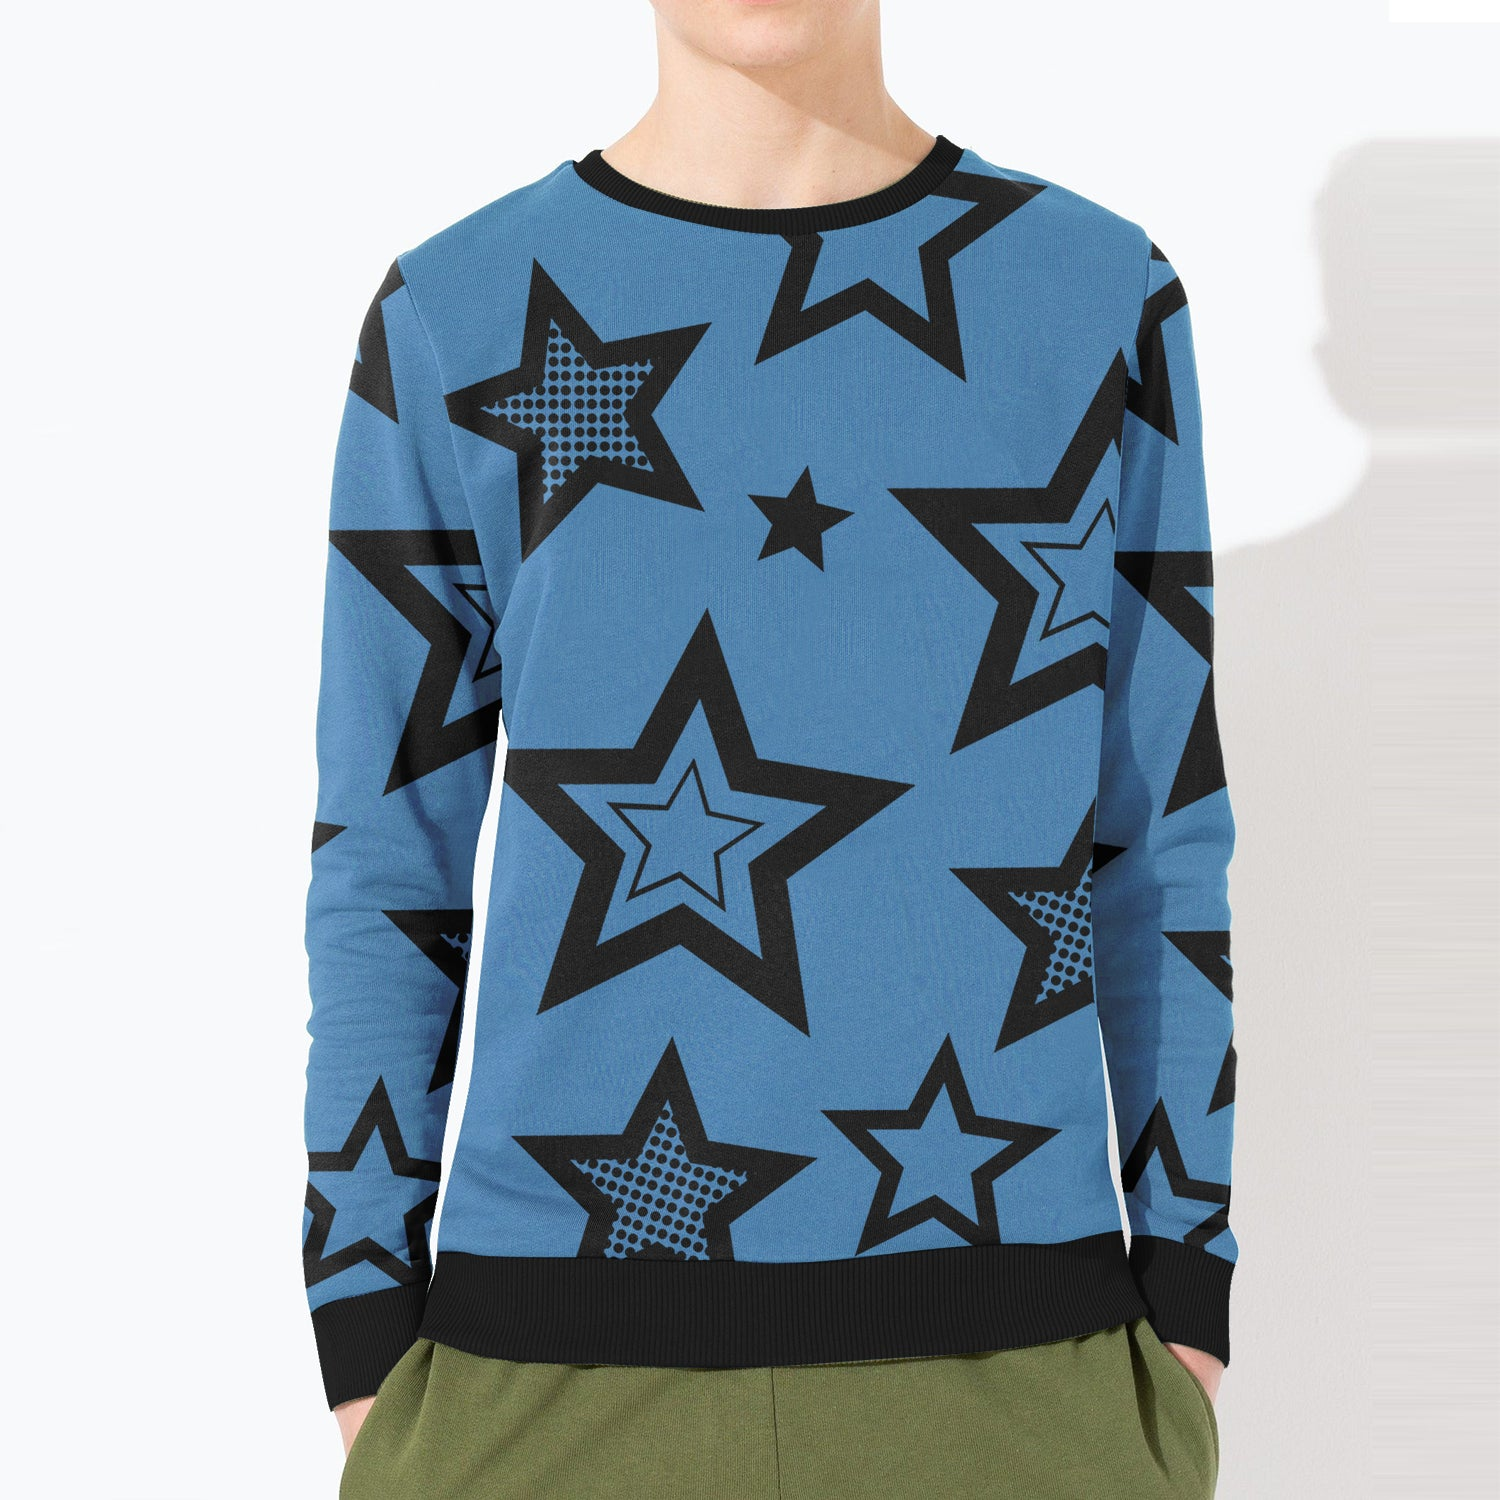 ZBaby Terry Fleece Sweatshirt For Kids-Blue with Stars Print-BE12816